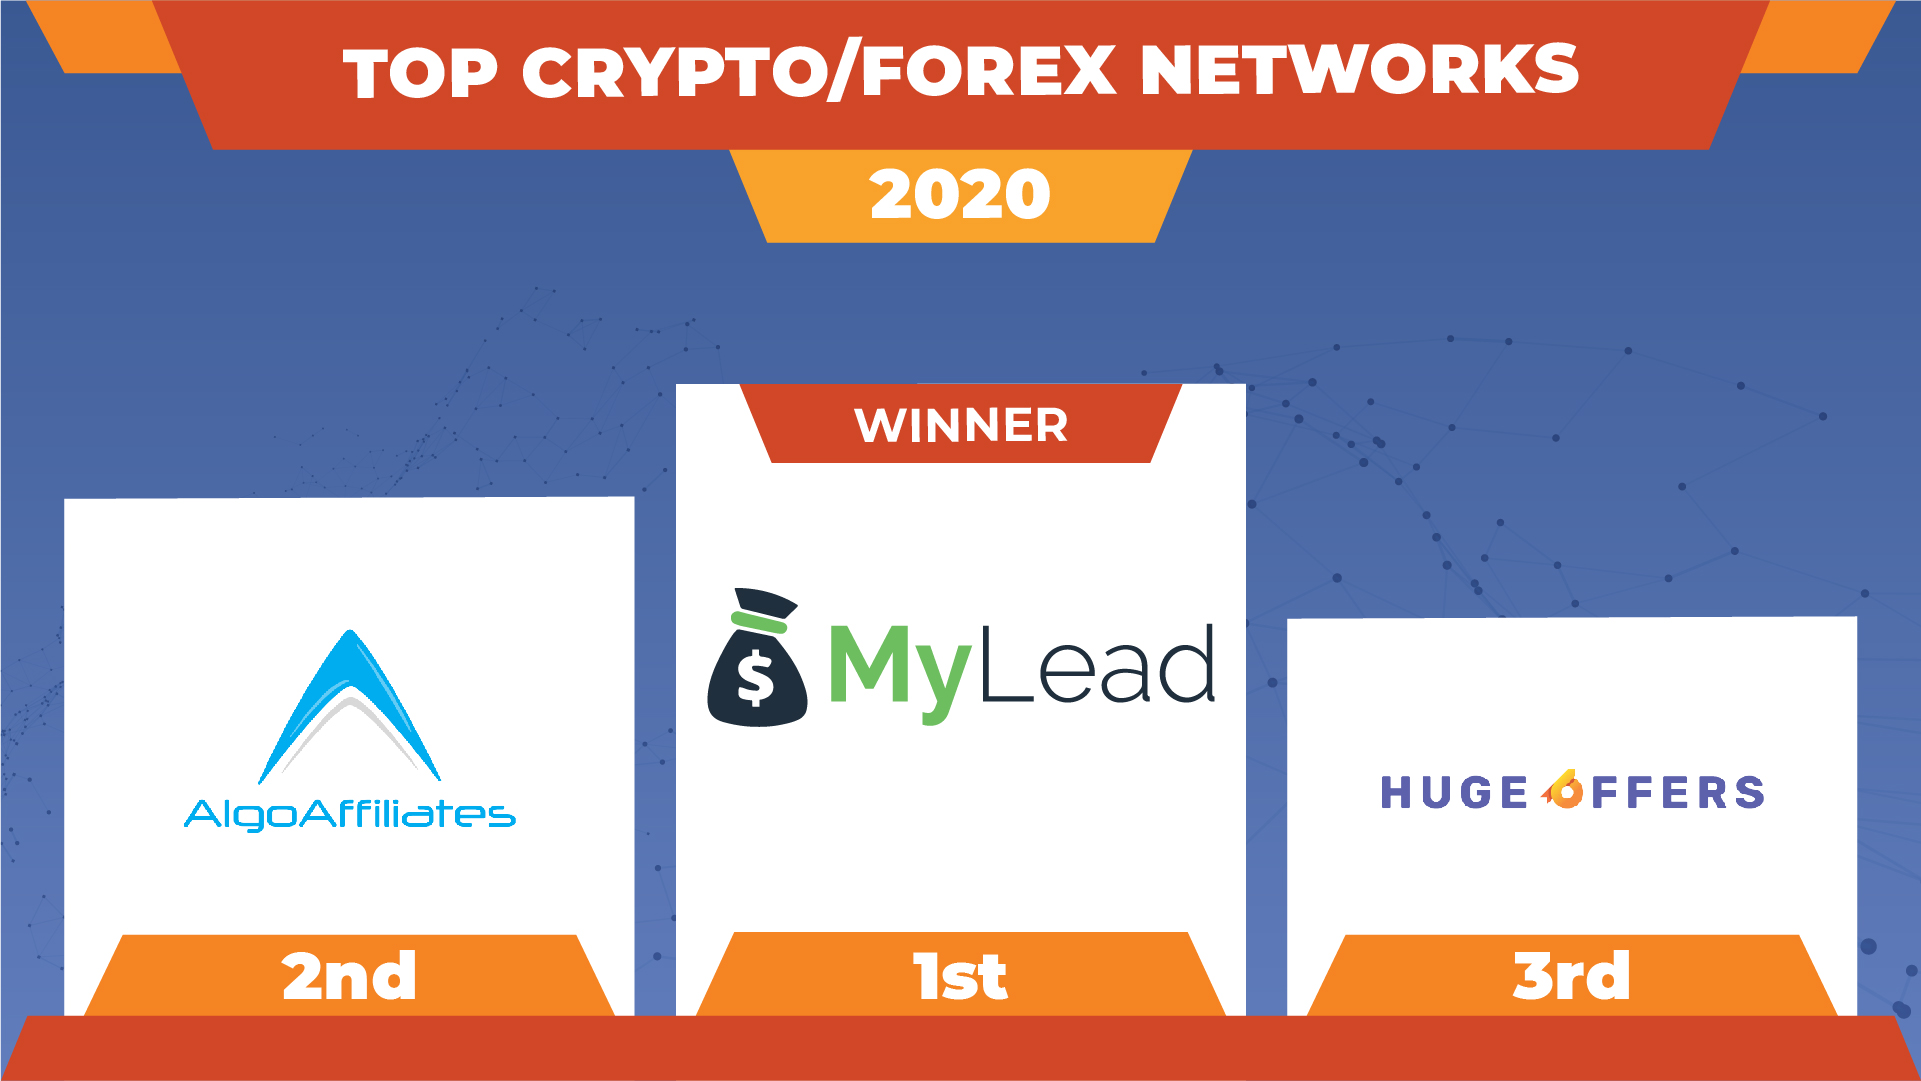 Top Crypto/Forex Networks